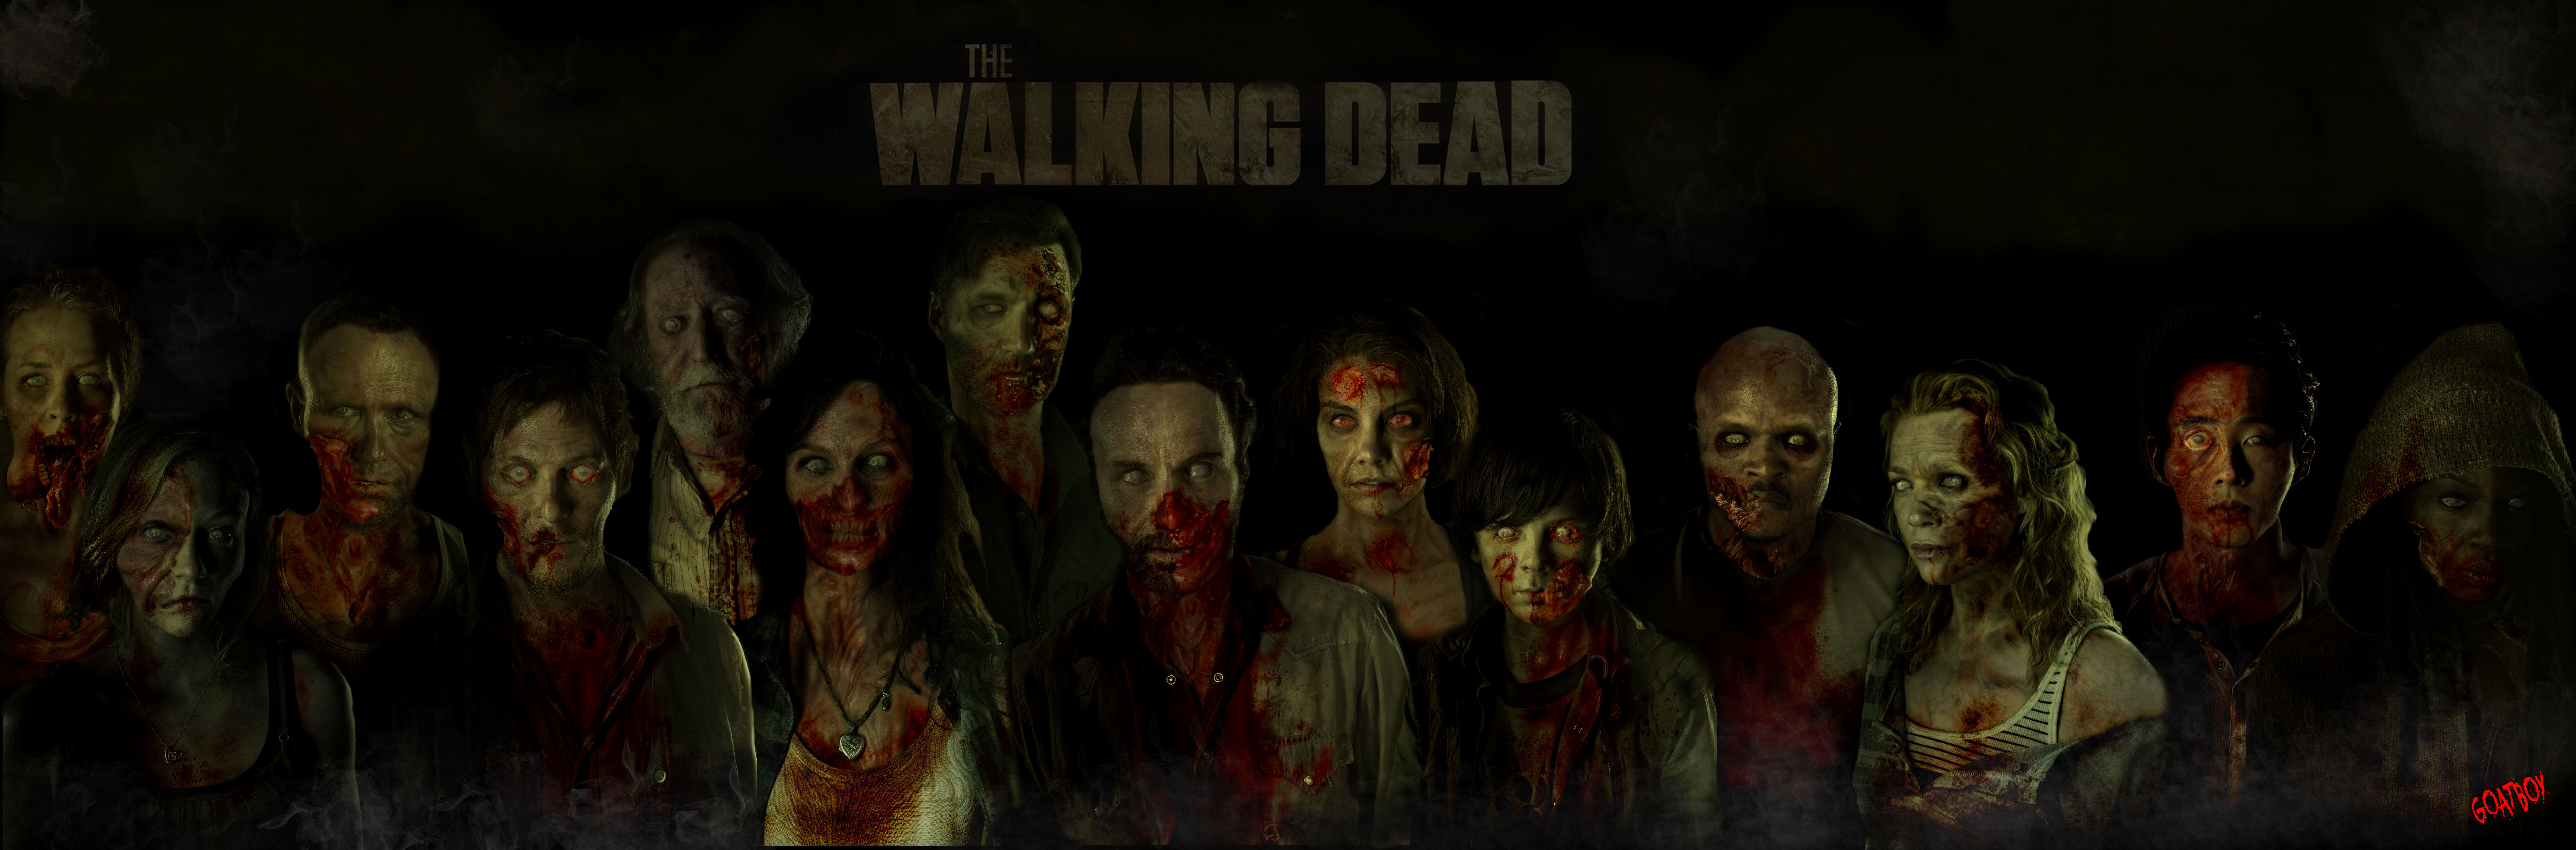 Pipoca Gigante Blog Archive The Walking Dead 10000x3299